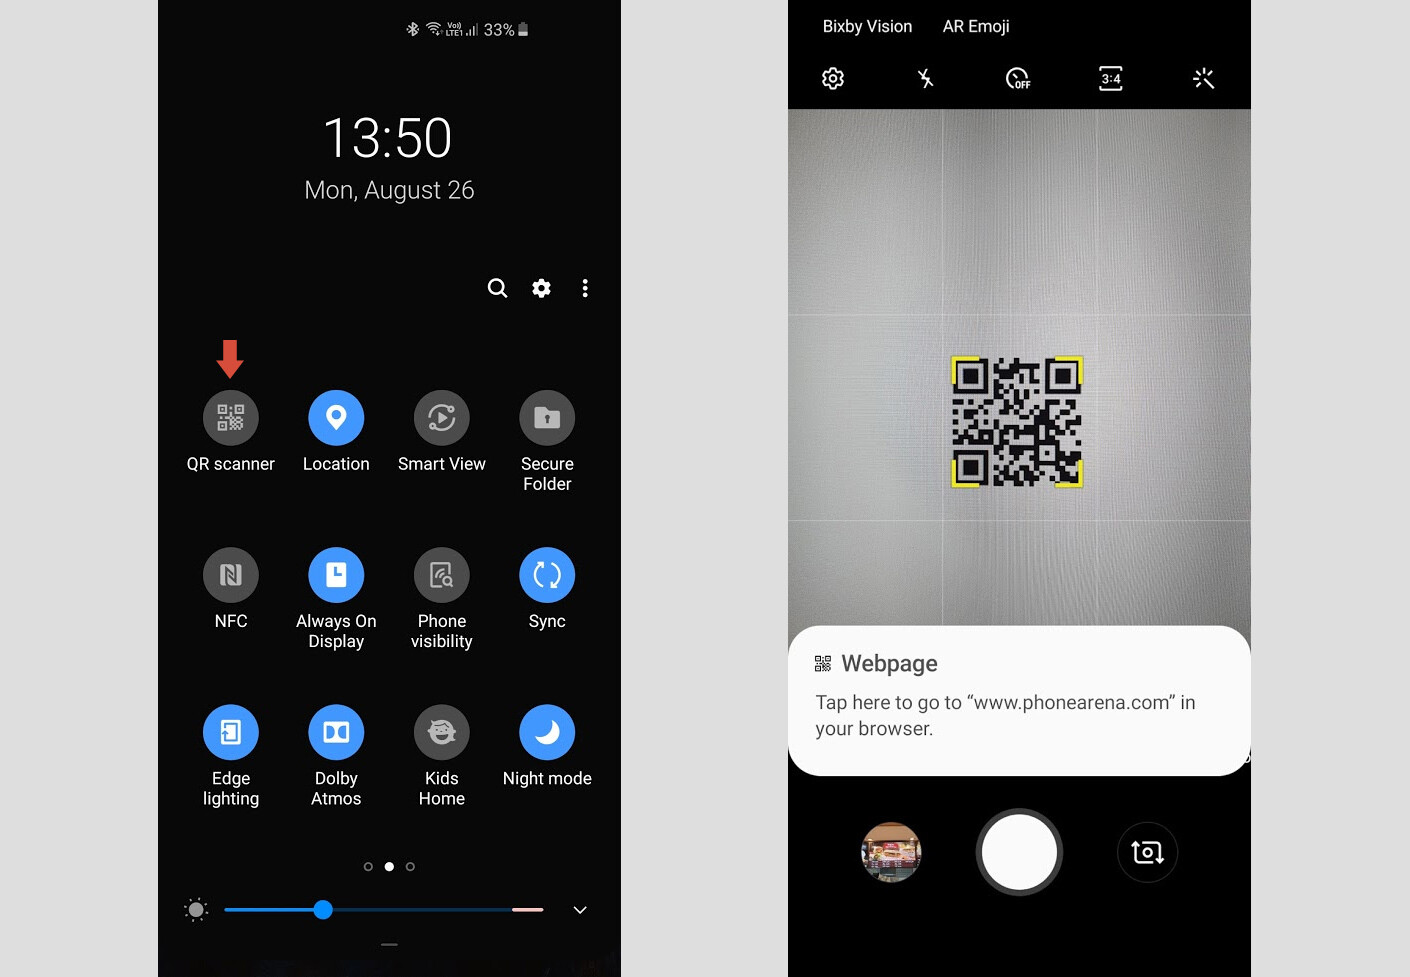 Samsung has built a QR code scanner into the stock Camera app in One UI - How to scan QR codes and barcodes on iPhone and Android